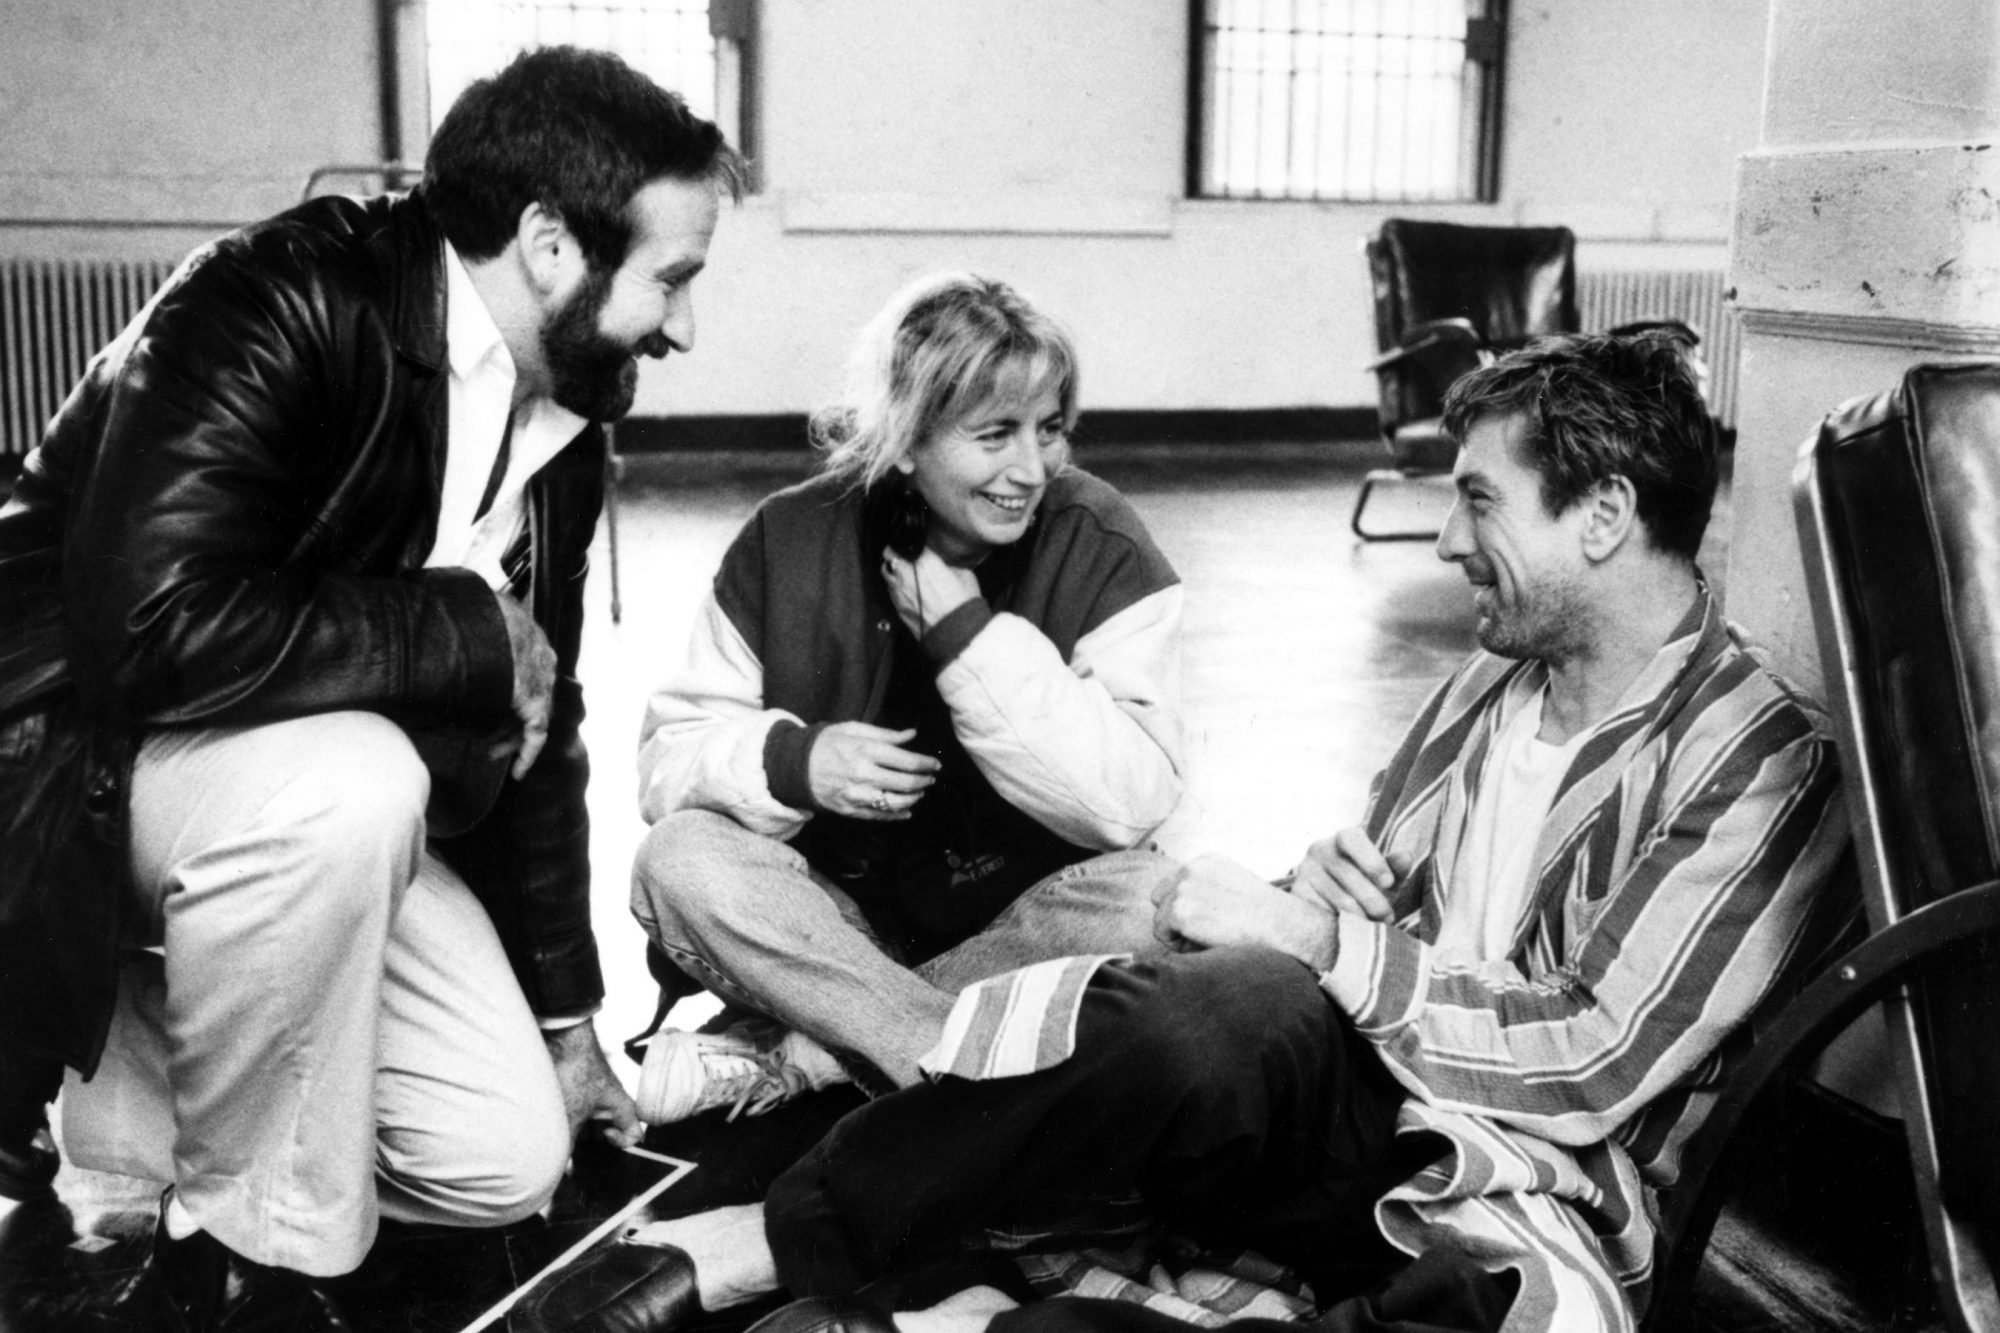 AWAKENINGS, Robin Williams, Penny Marshall, Robert De Niro, 1990. (c) Paramount Pictures/ Courtesy: